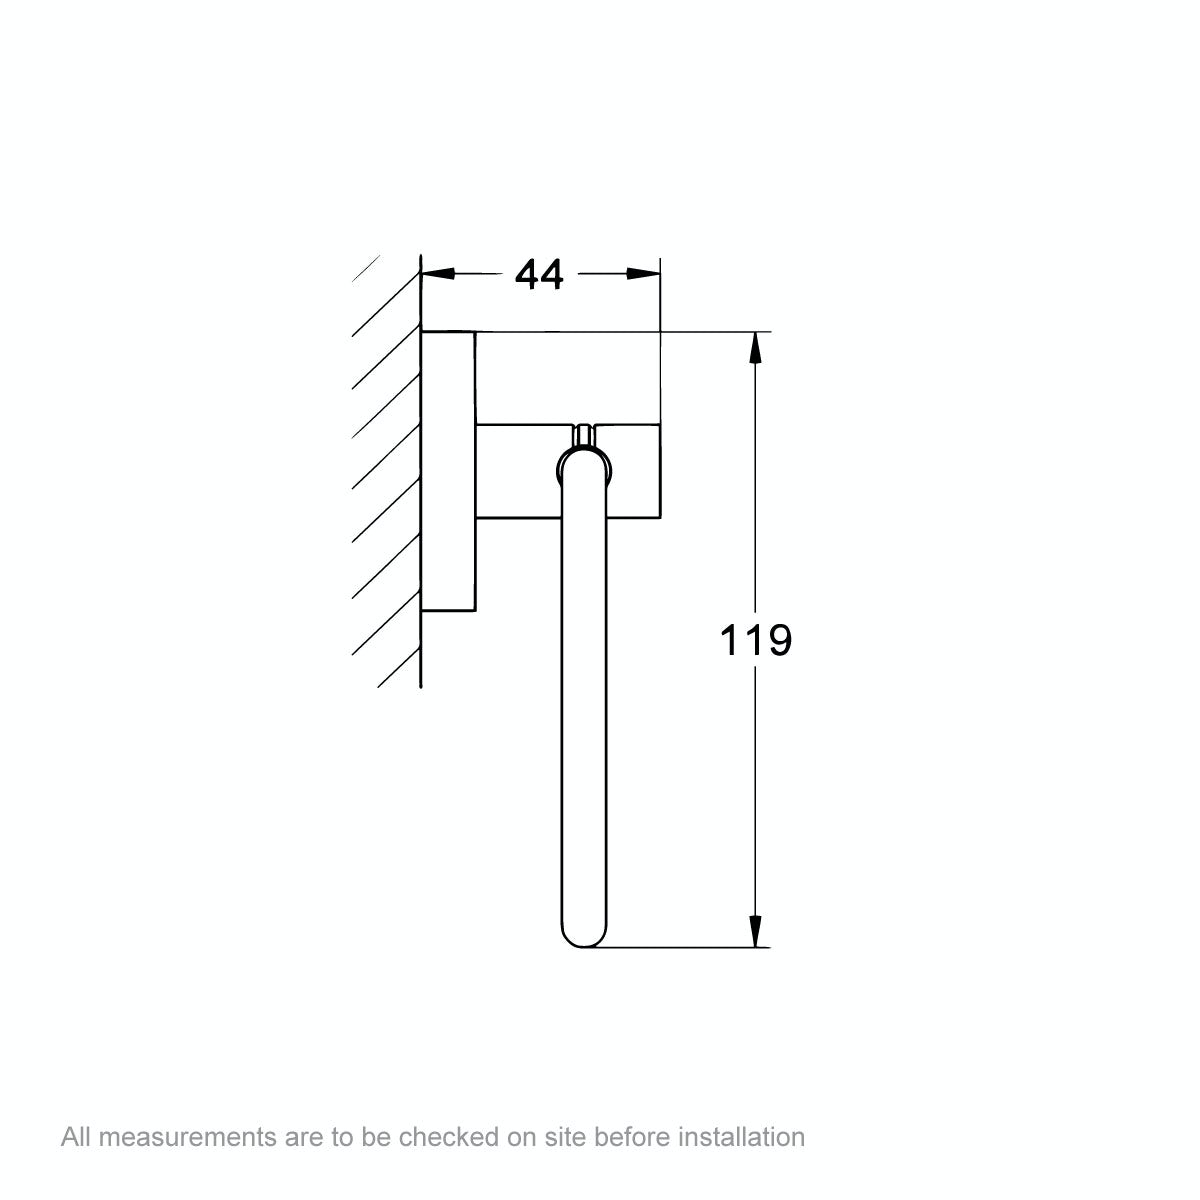 Dimensions for Grohe Essentials toilet roll holder